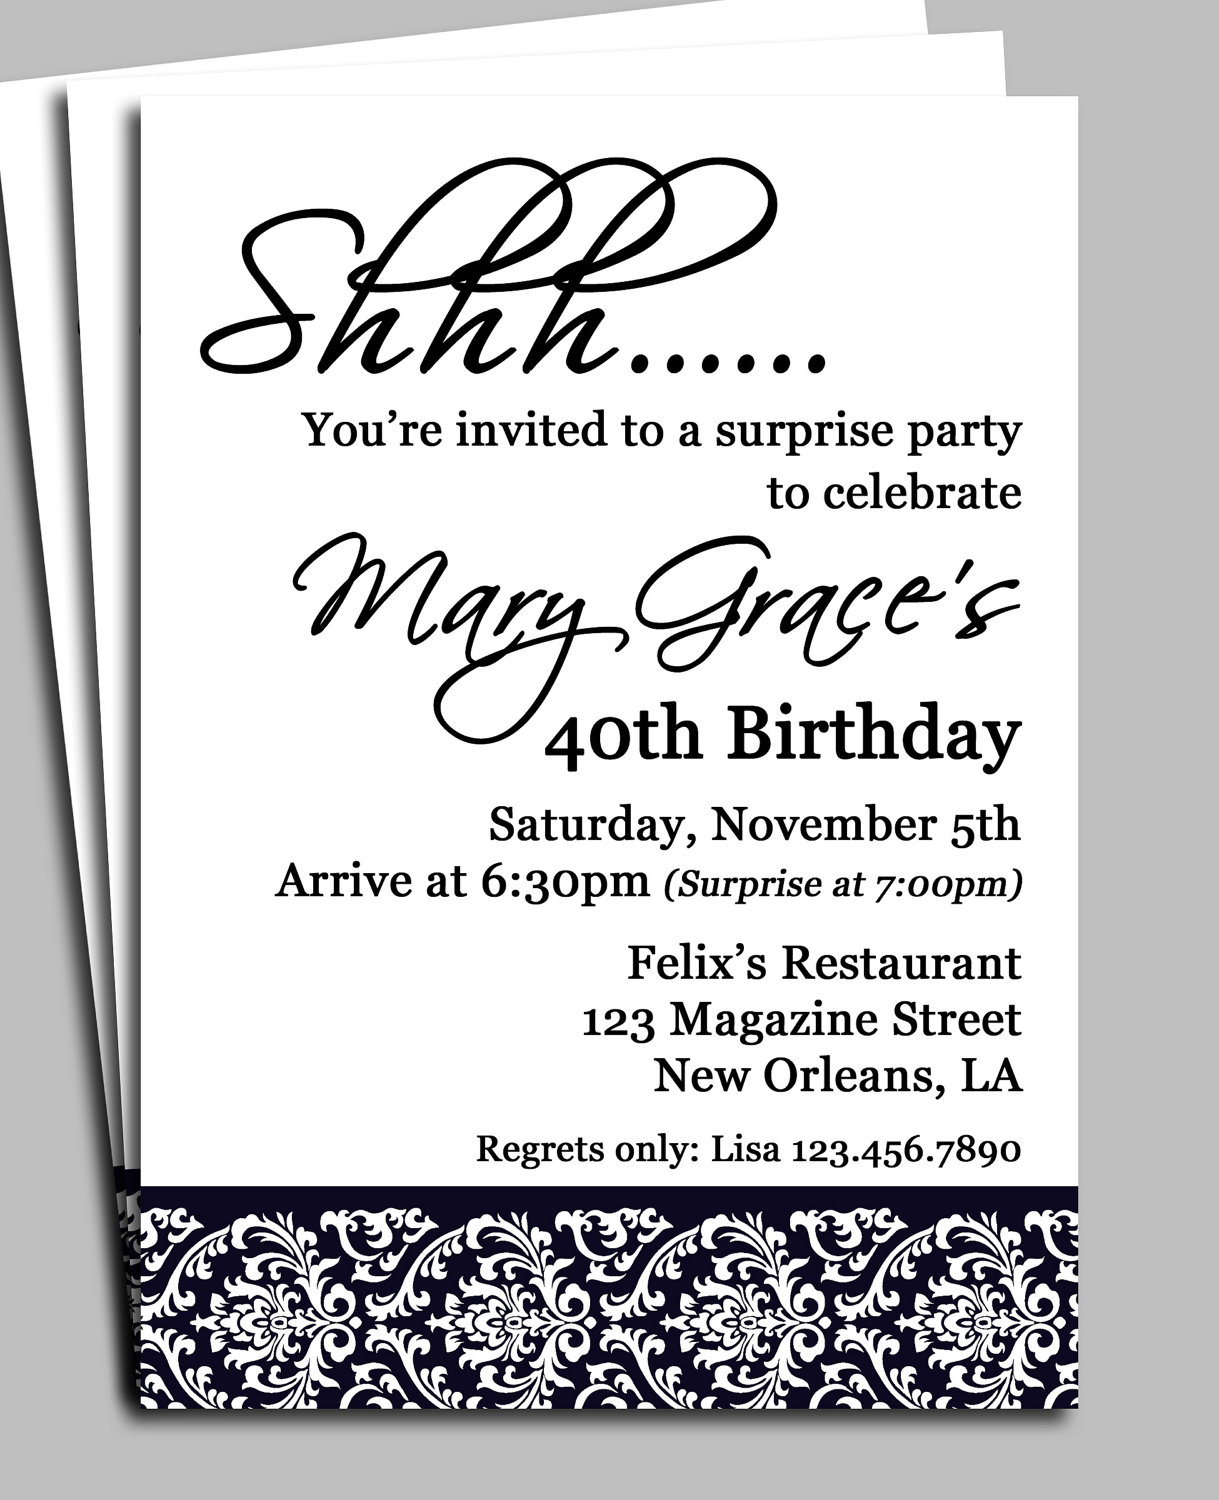 Surprise 50th birthday party invitations templates mickey mouse templates free 50th birthday invitations surprise party stopboris Gallery